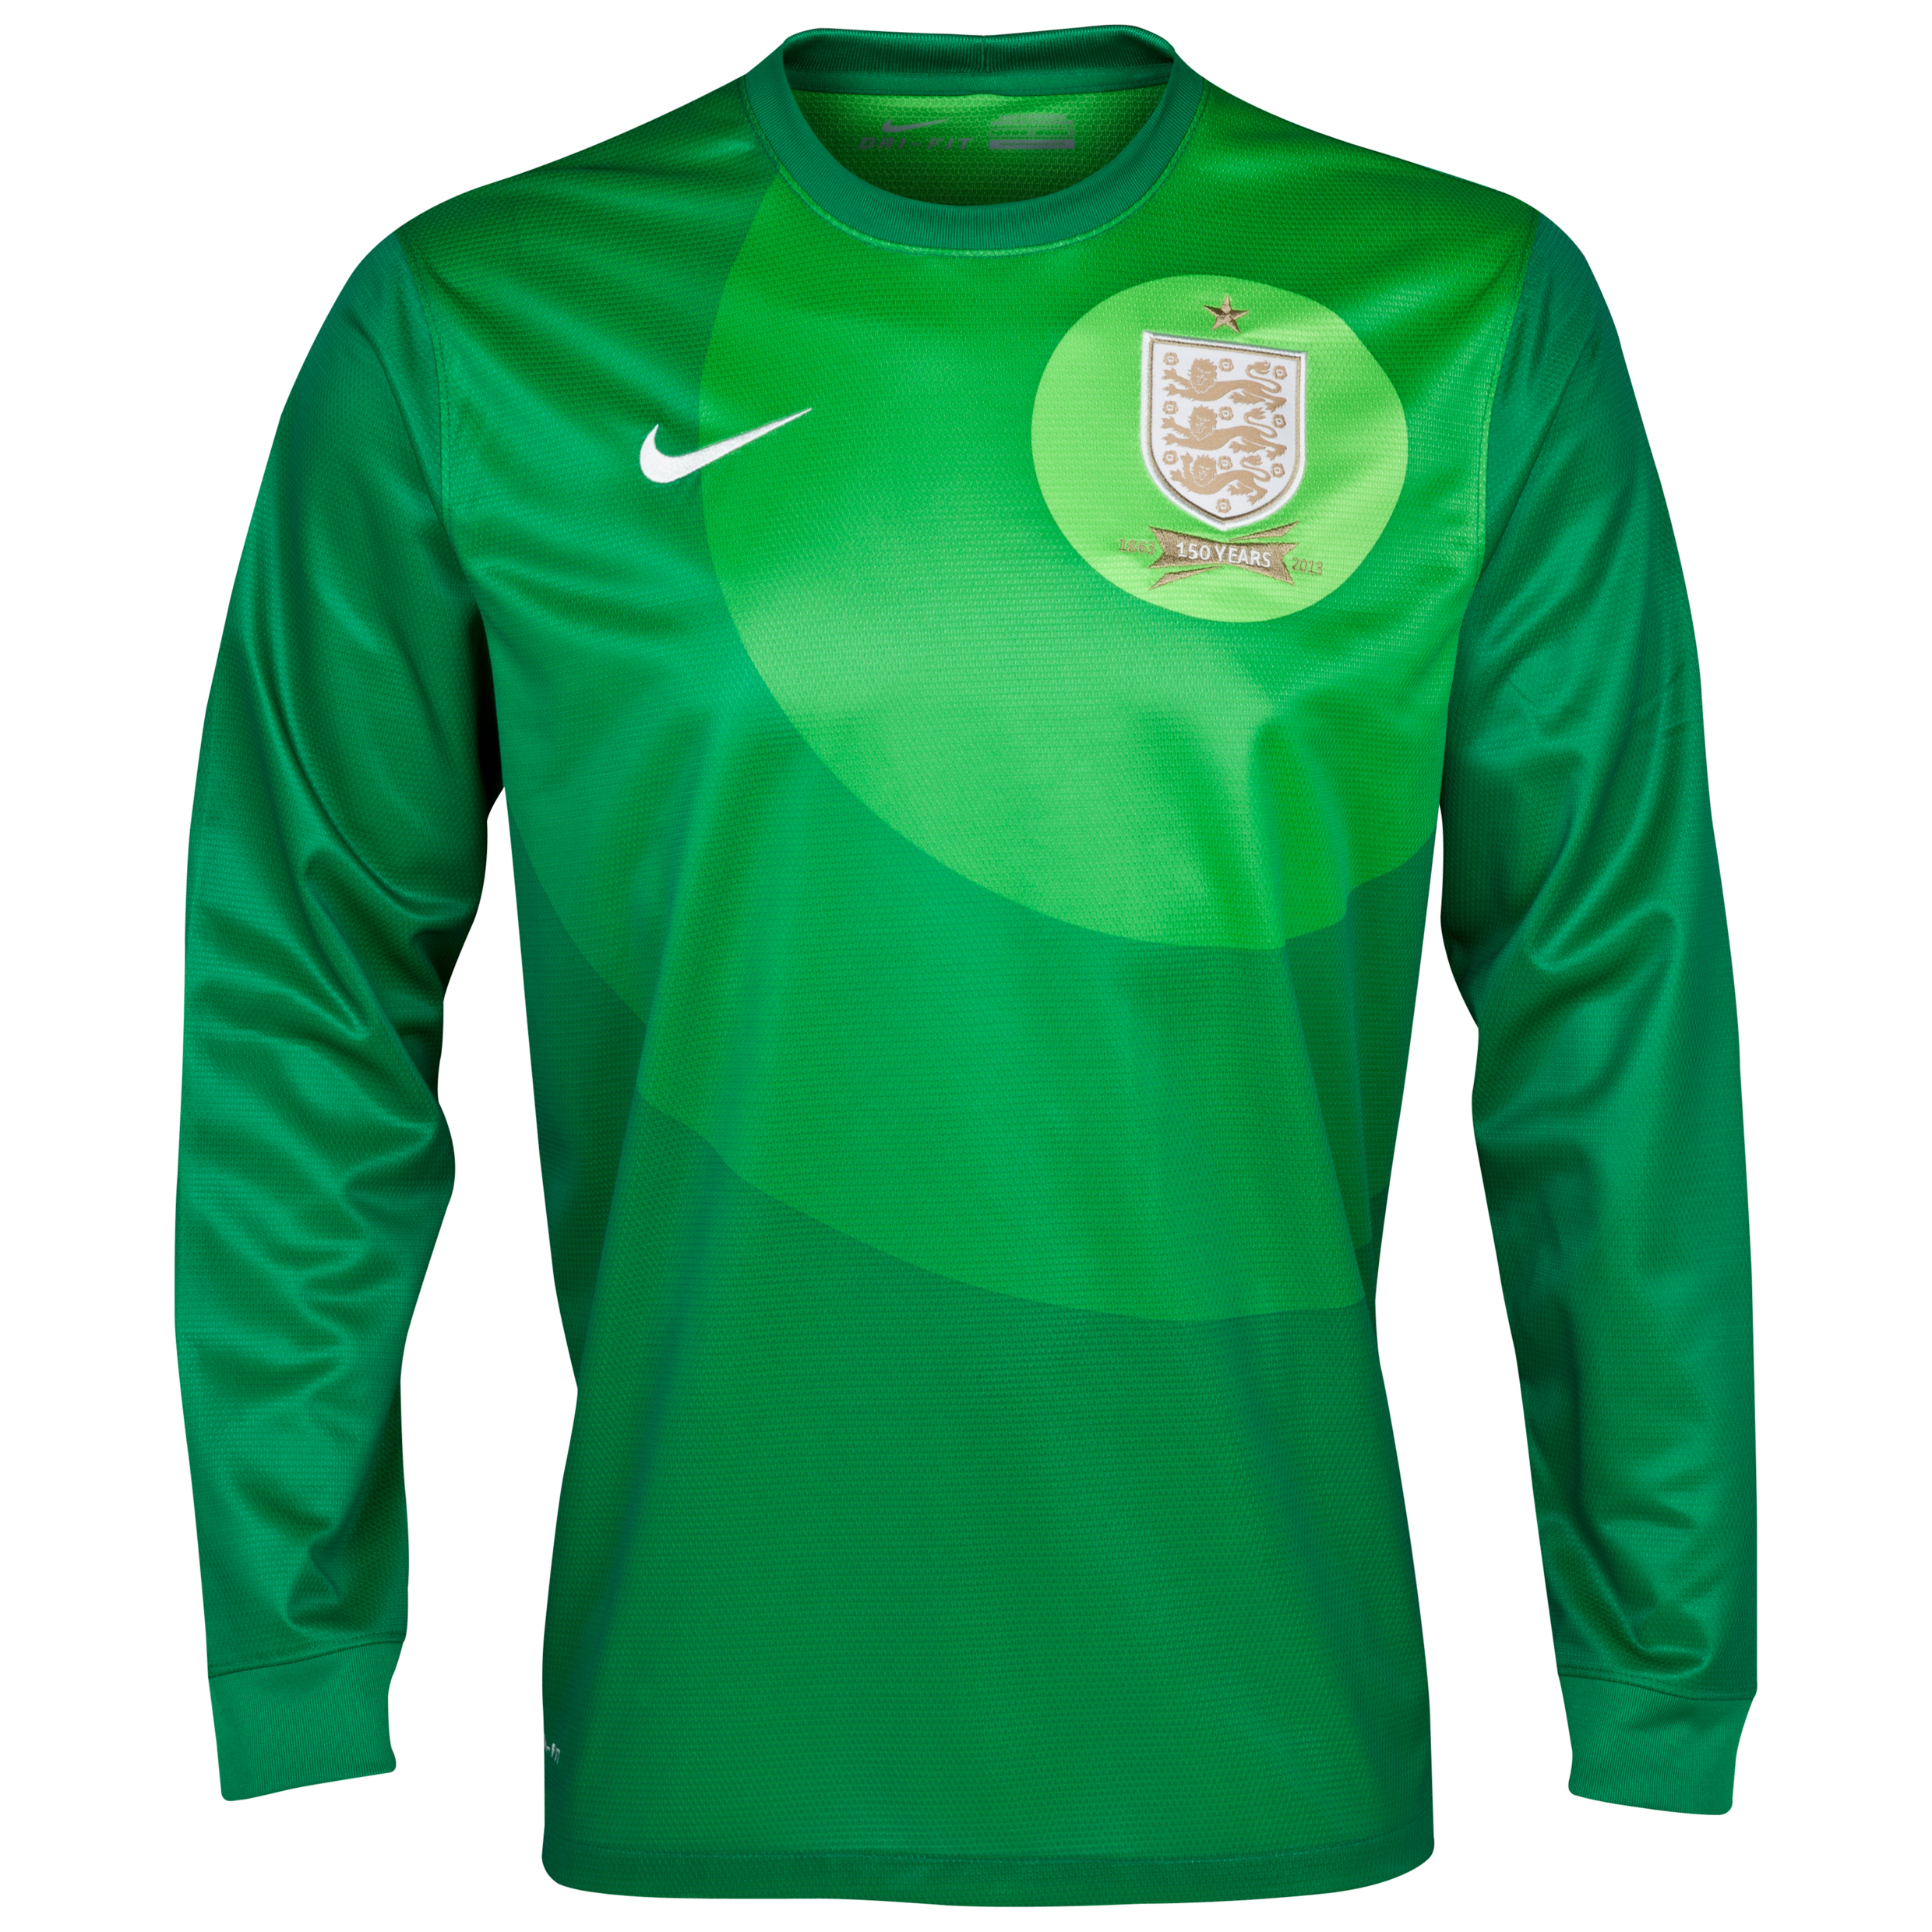 England Home Goalkeeper Shirt 2013/14 Long Sleeve Kids Green